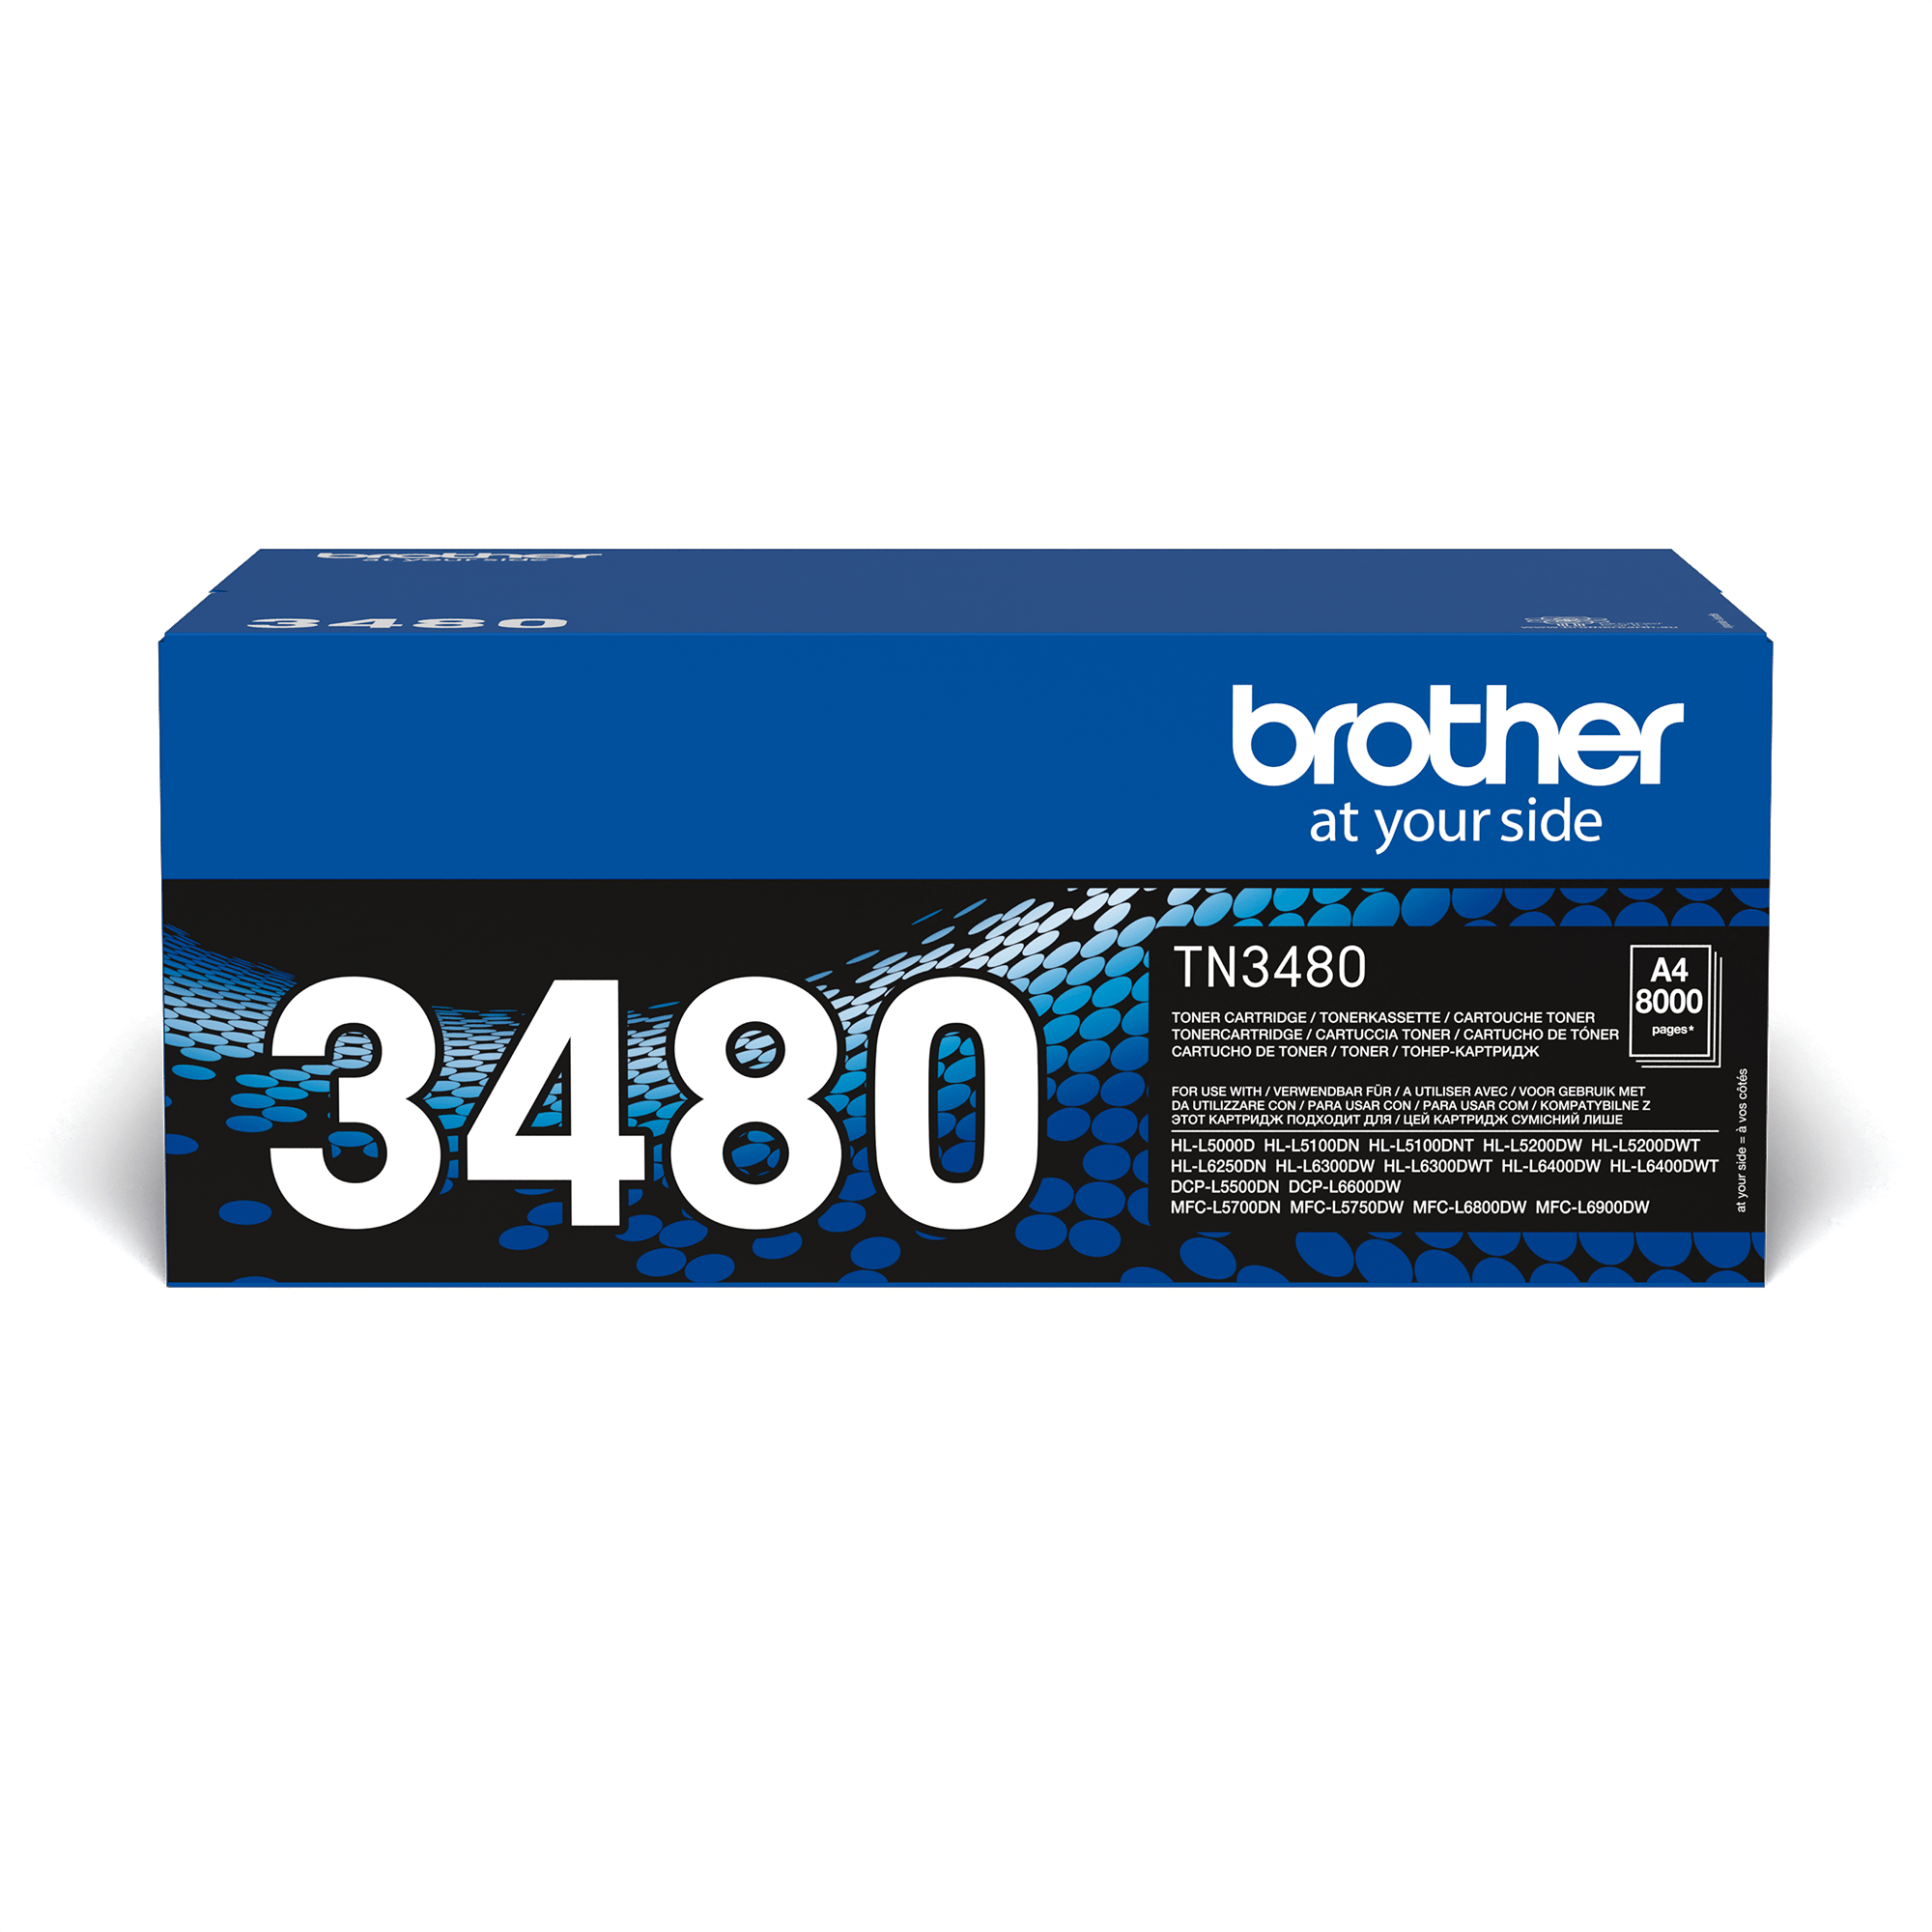 Toner TN-3480 Original Brother – Schwarz